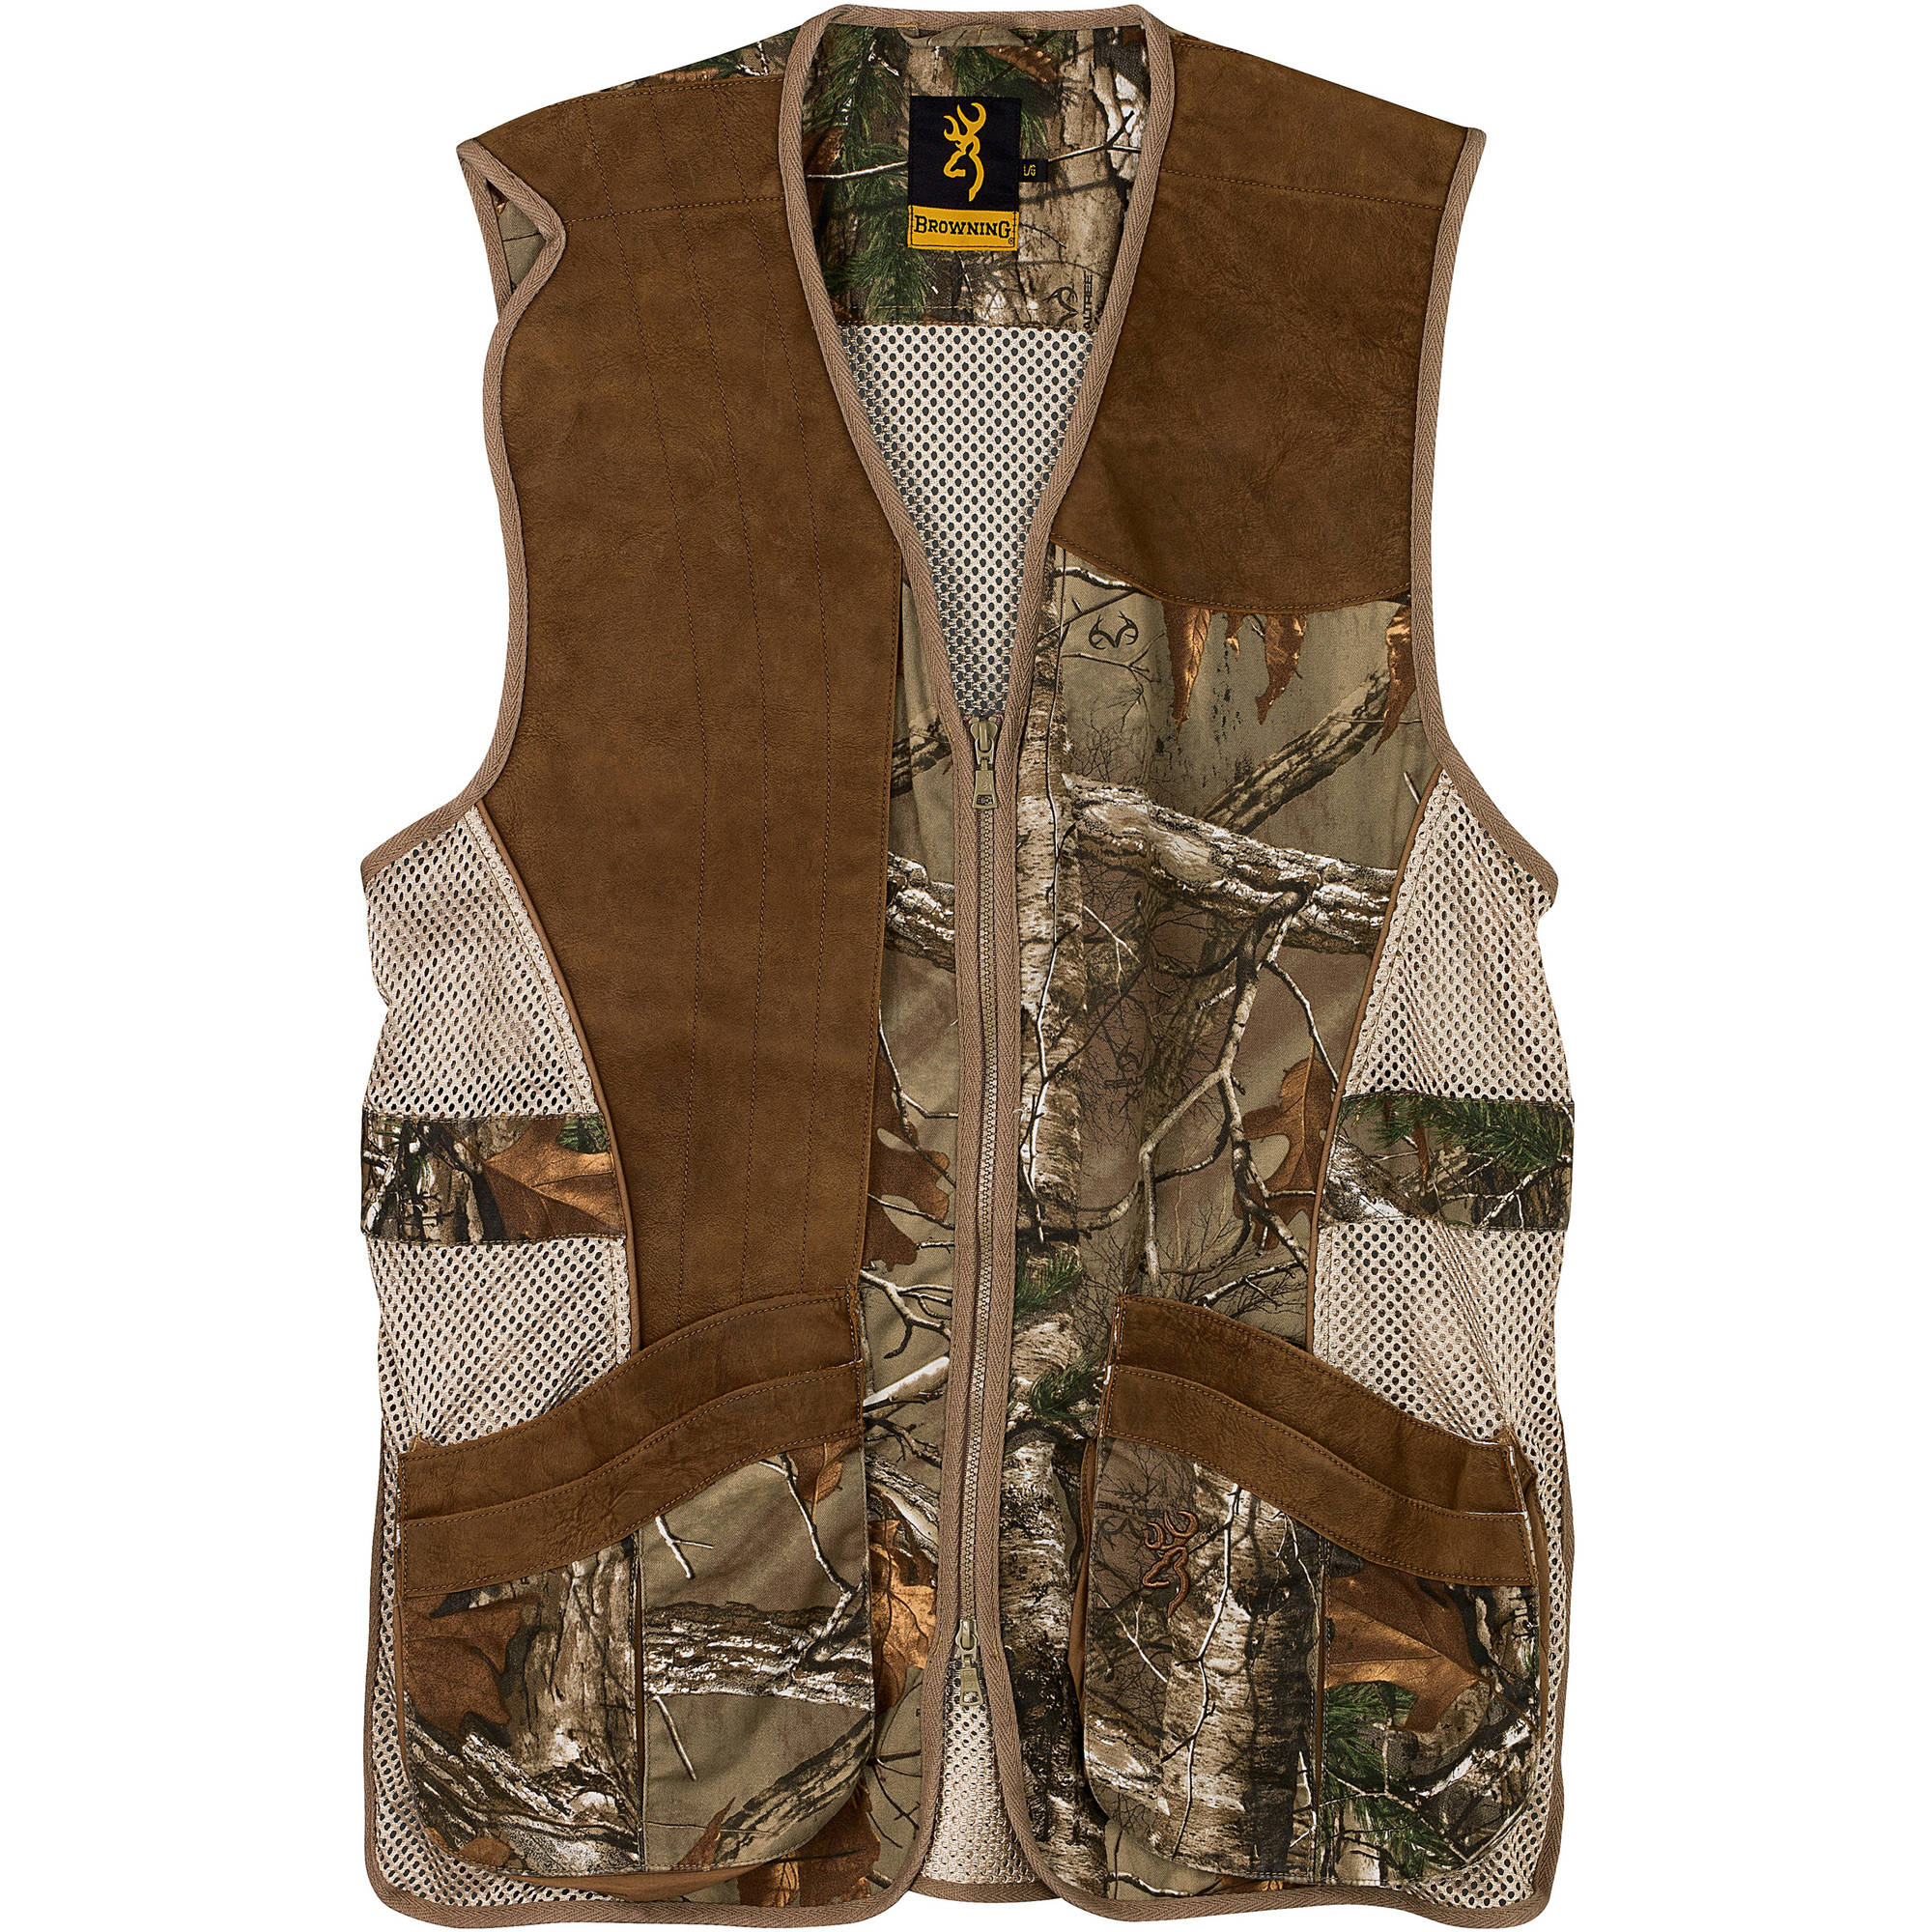 Crossover Vest, Realtreee Xtra/Leather